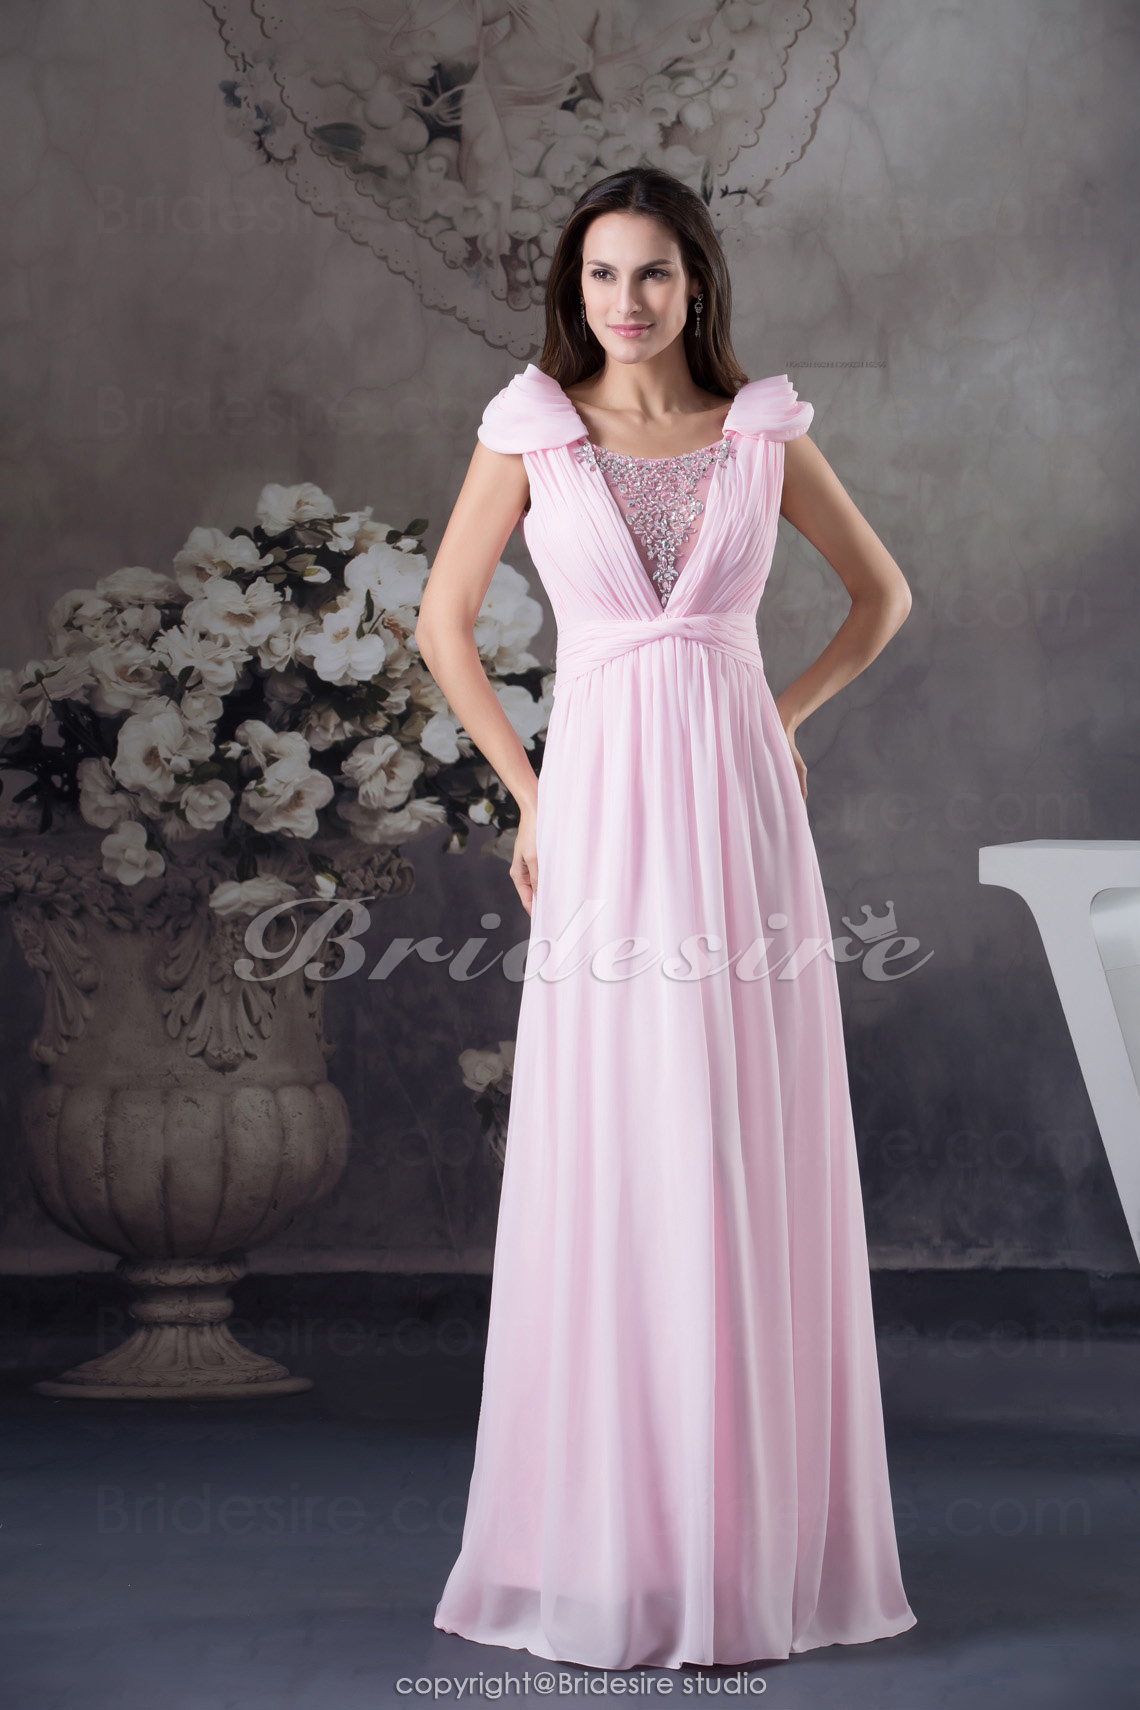 Sheath/Column Square Floor-length Short Sleeve Chiffon Dress